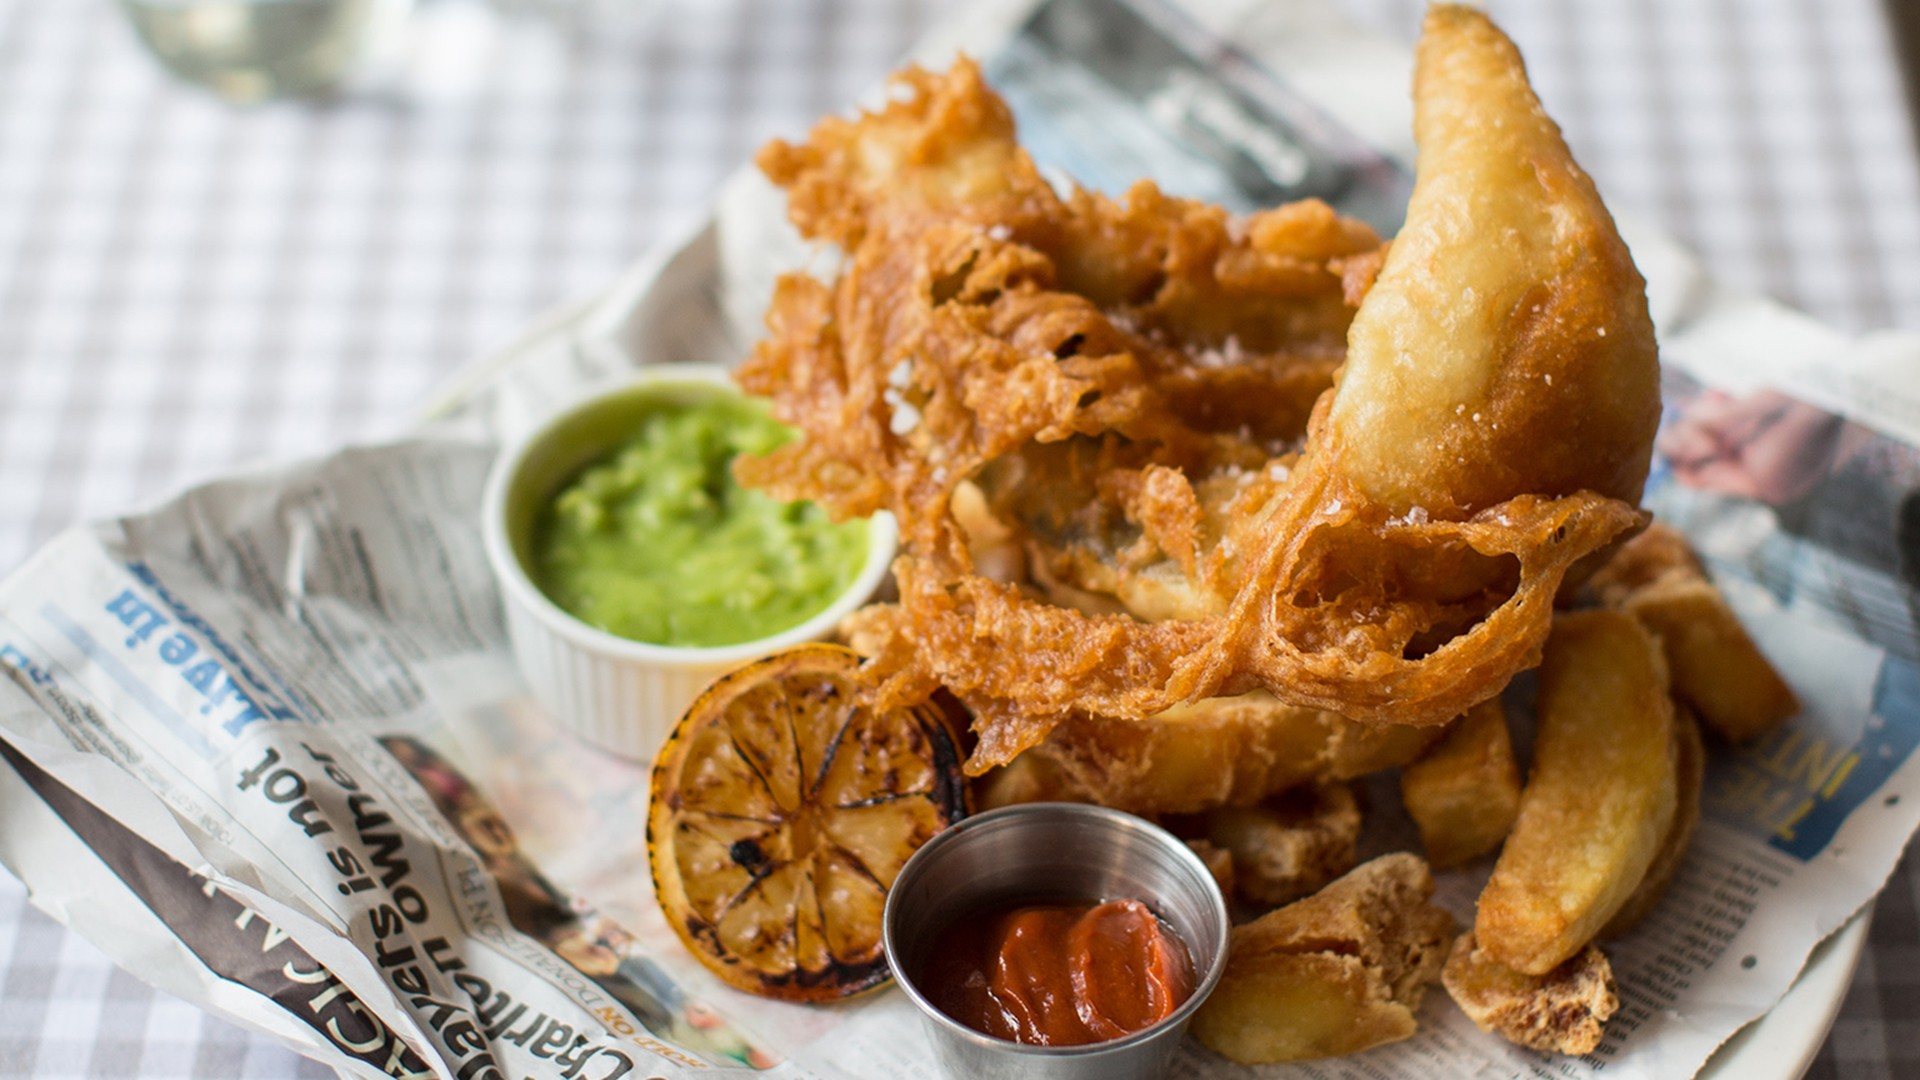 London's best fish and chips – Bonnie Gull